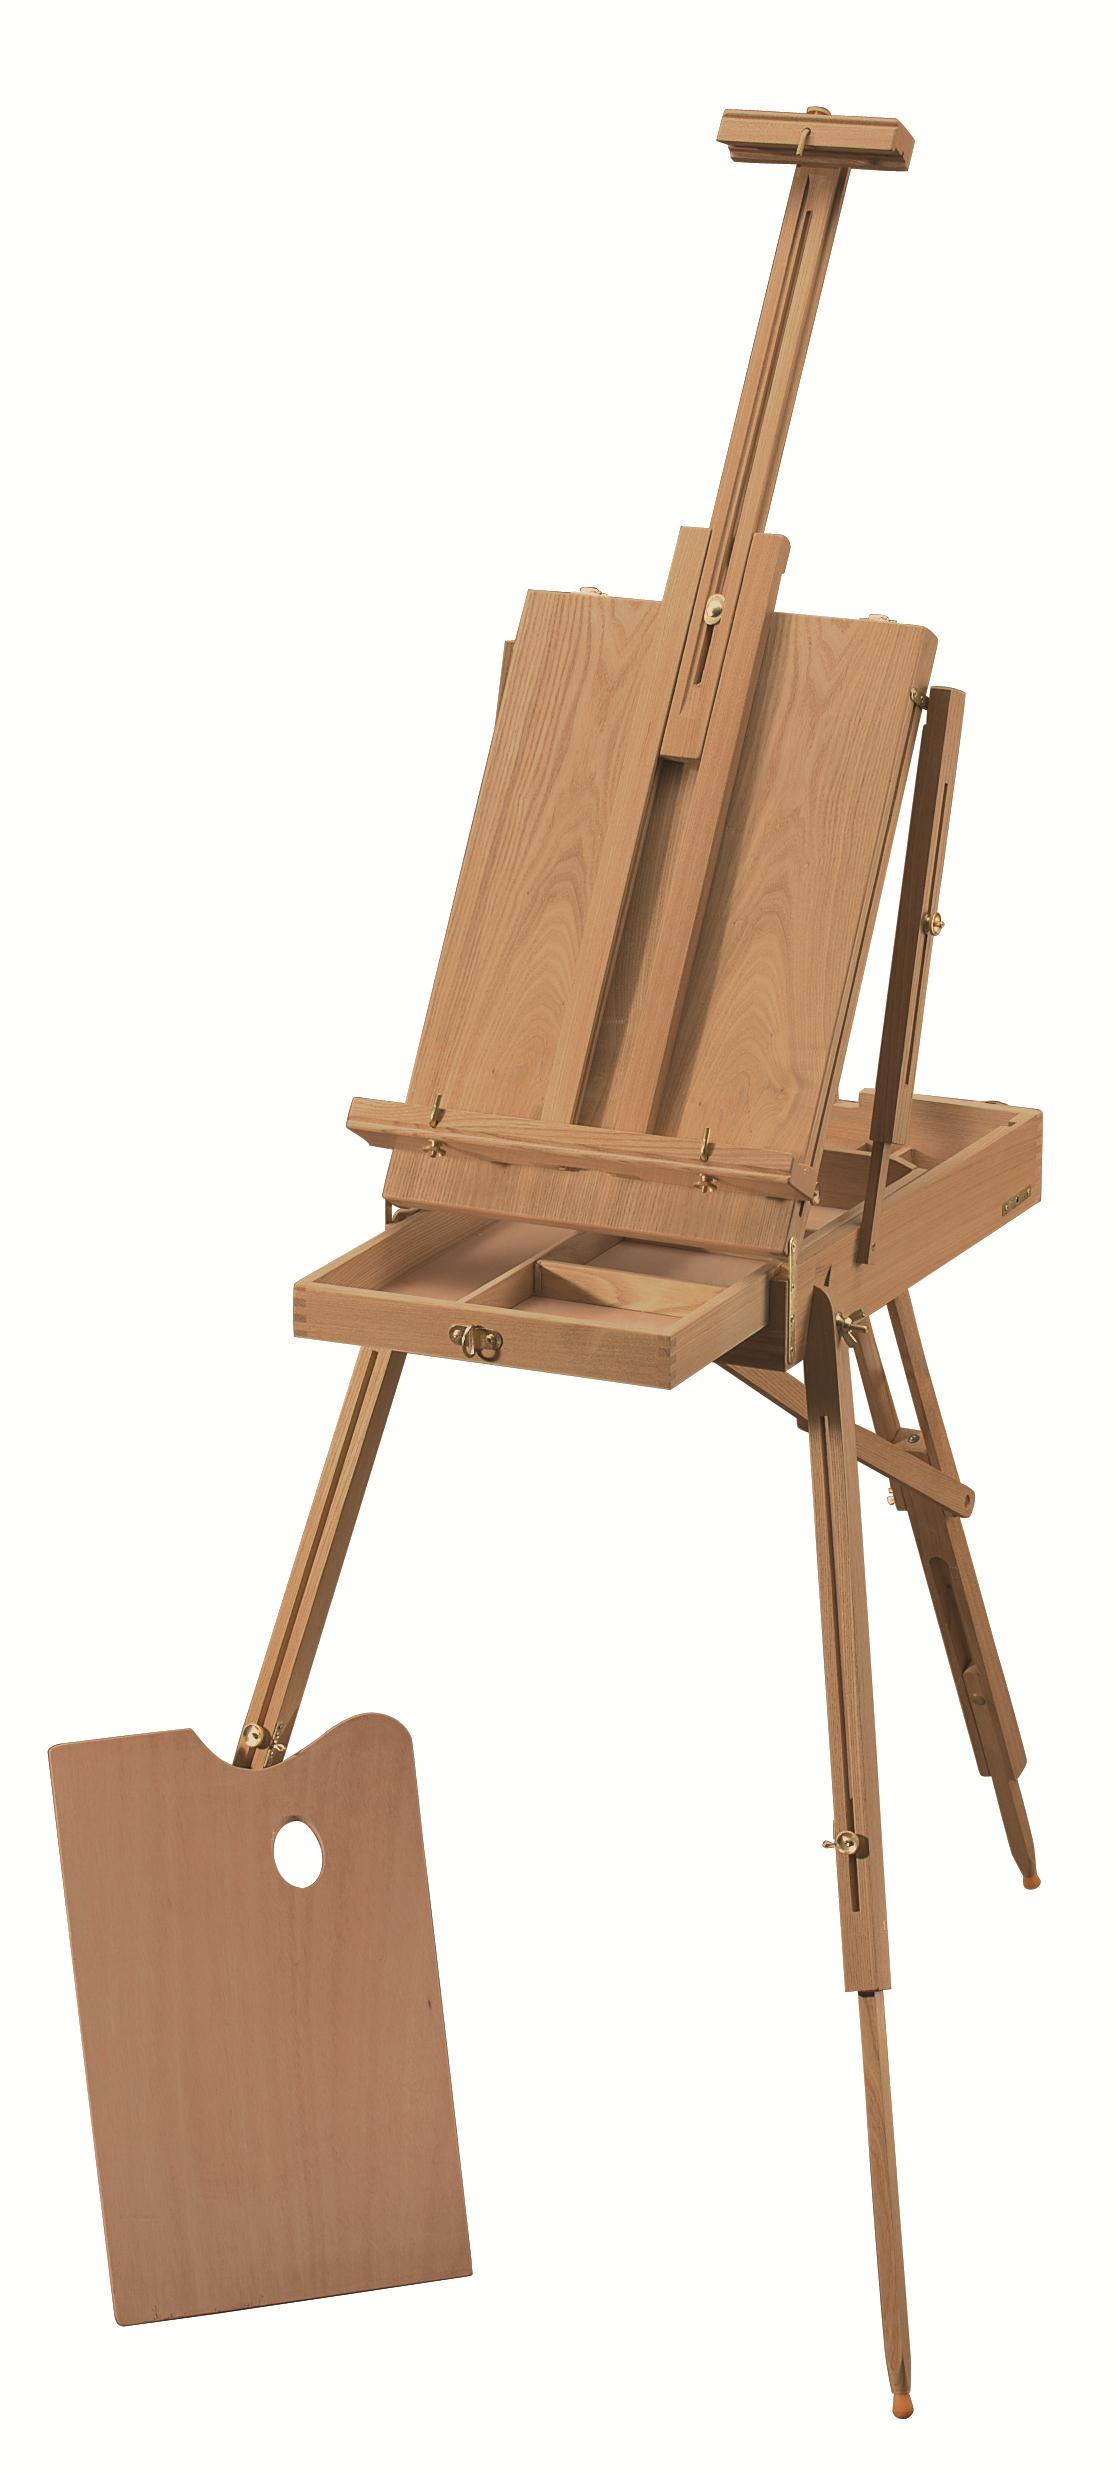 Alvin Heritage Basic French Easel Hwe208 Tiger Supplies